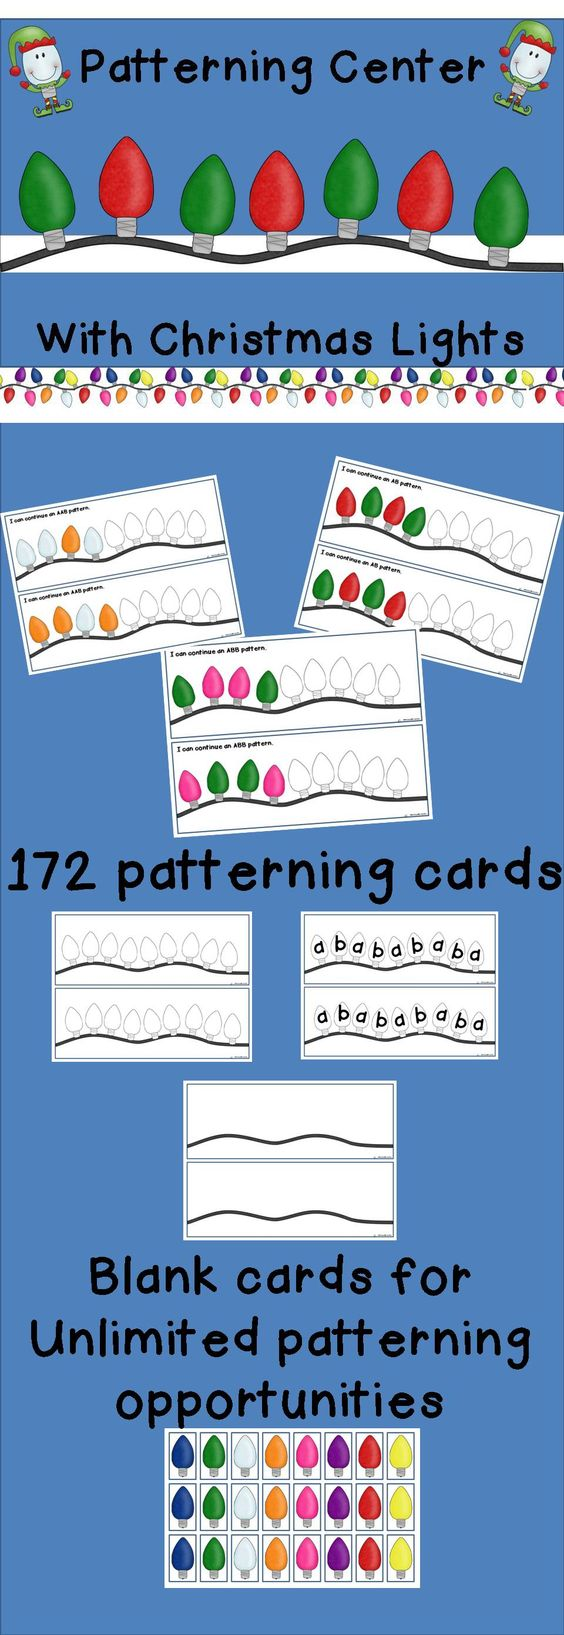 math worksheet : patterning with christmas lights  christmas lights fun and student : Christmas Math Games Worksheets